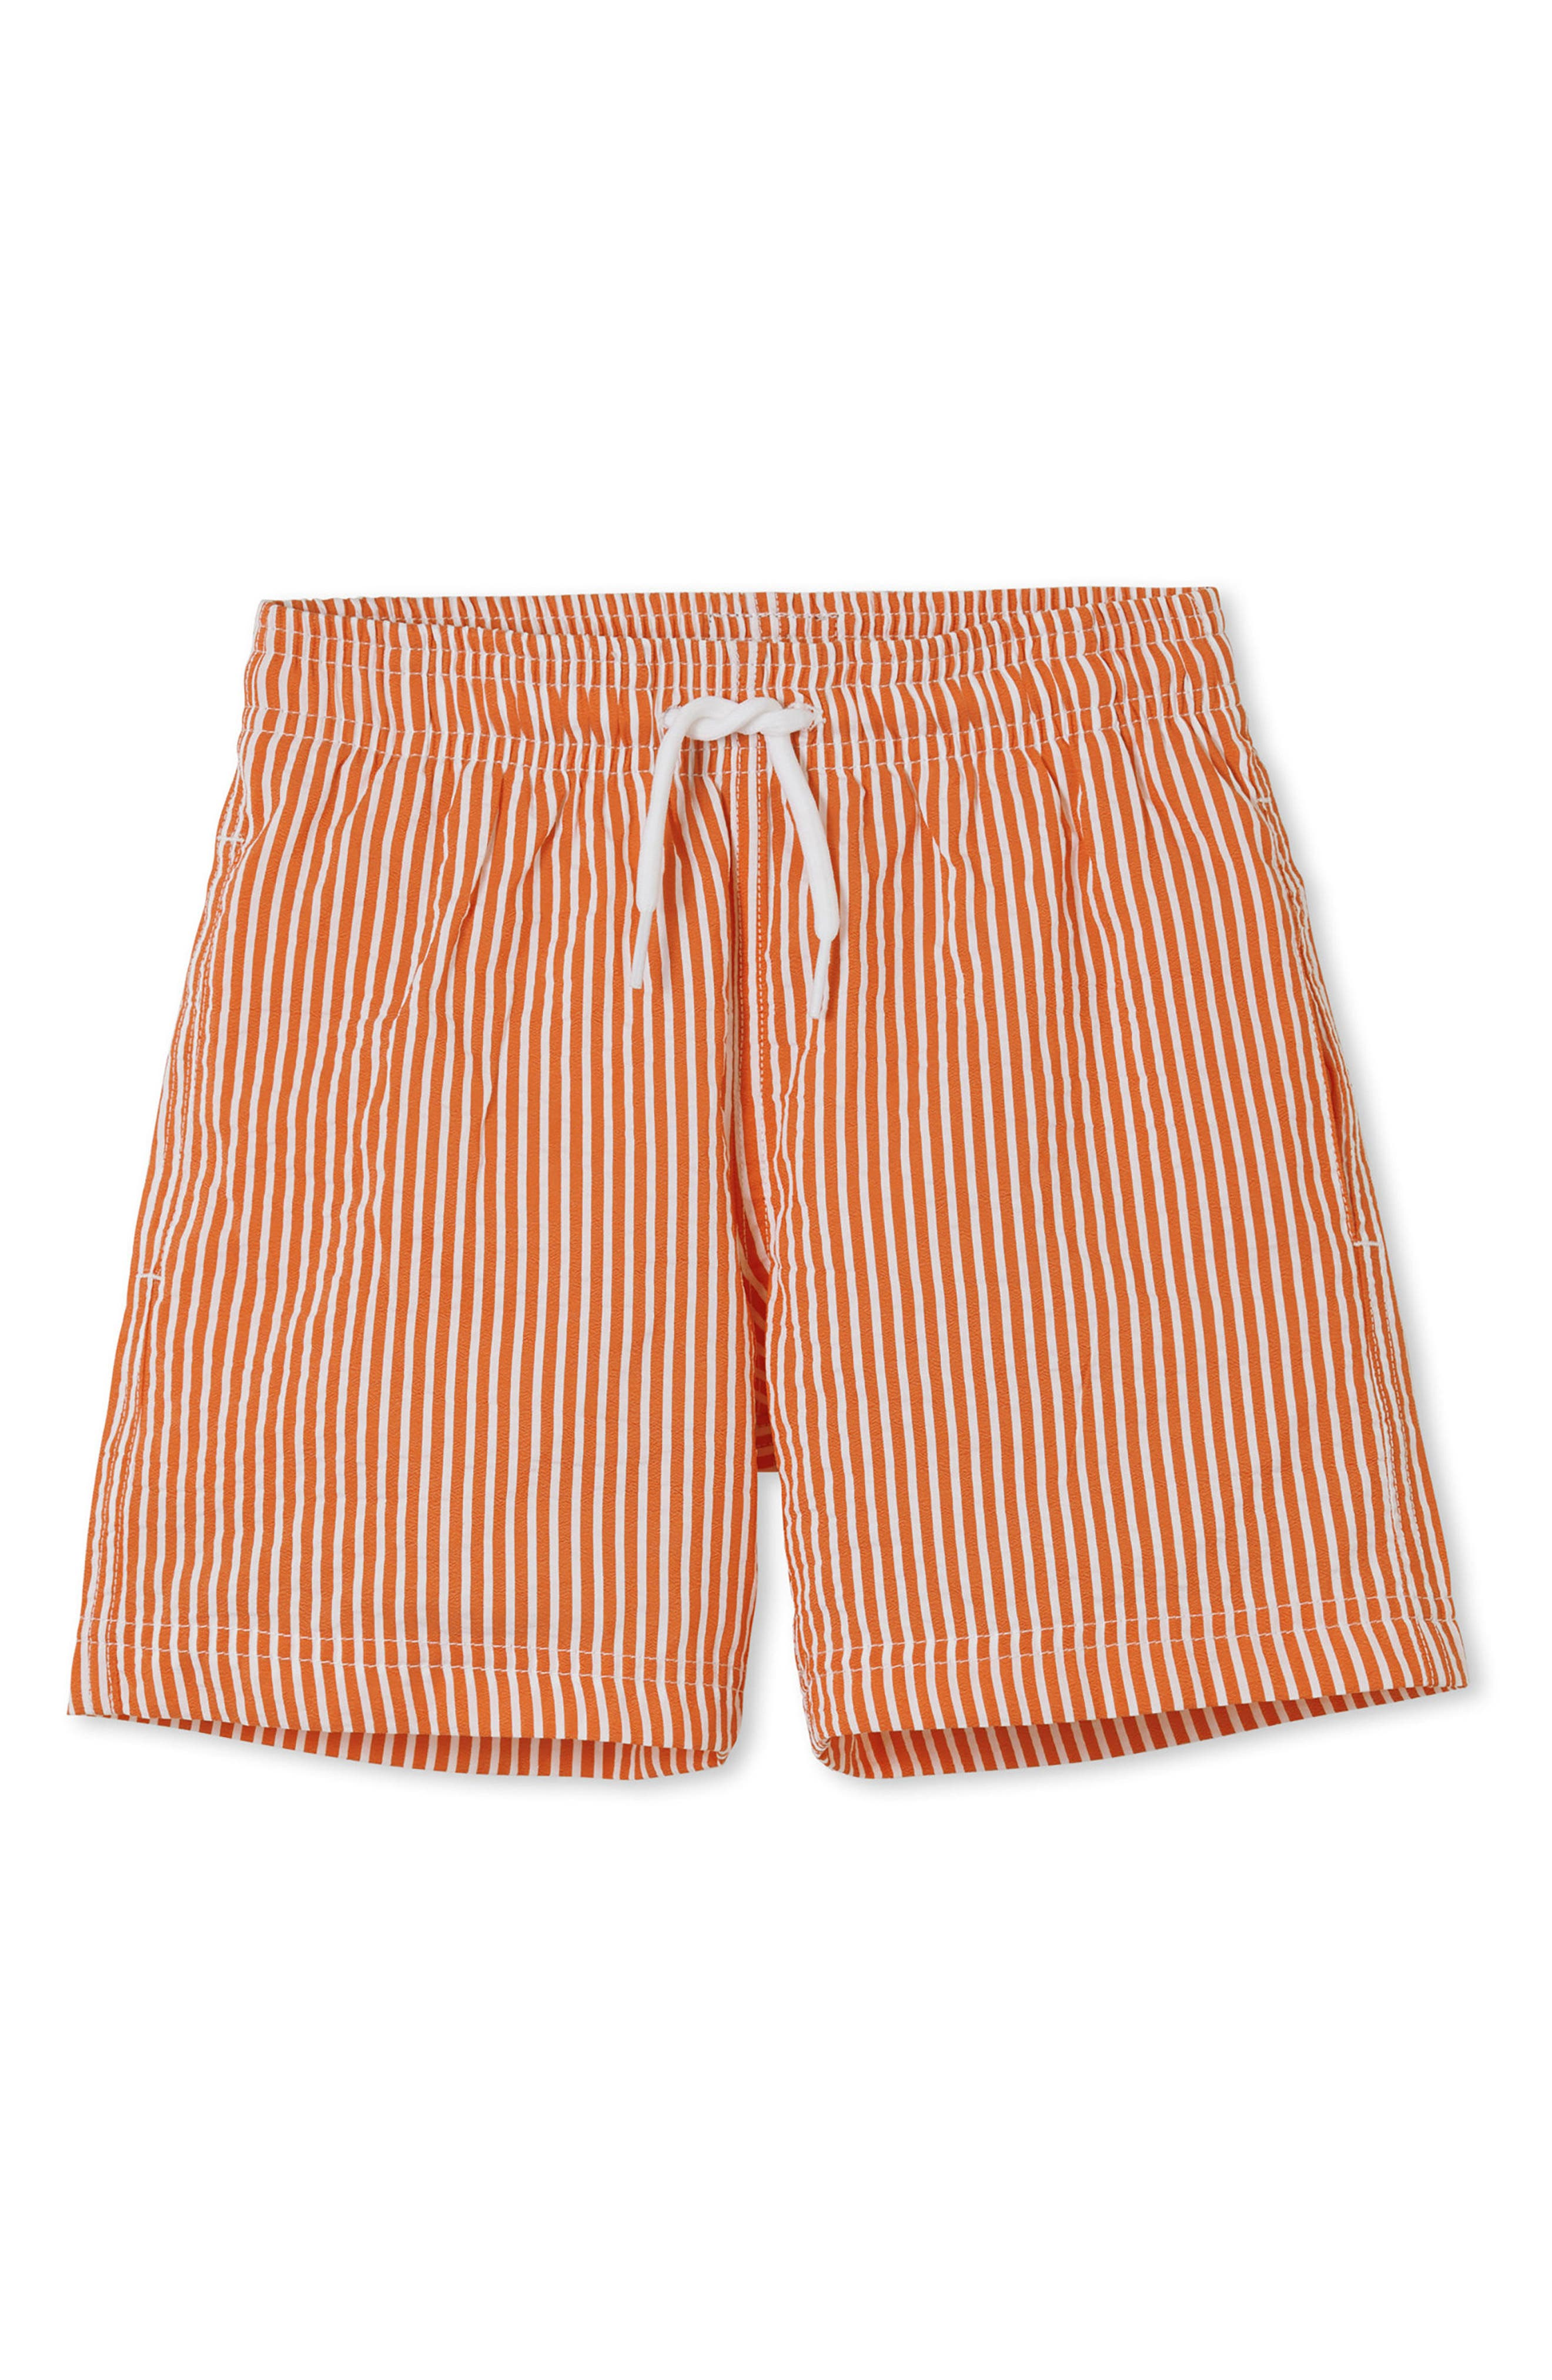 Orange Stripe Swim Trunks,                         Main,                         color, Orange